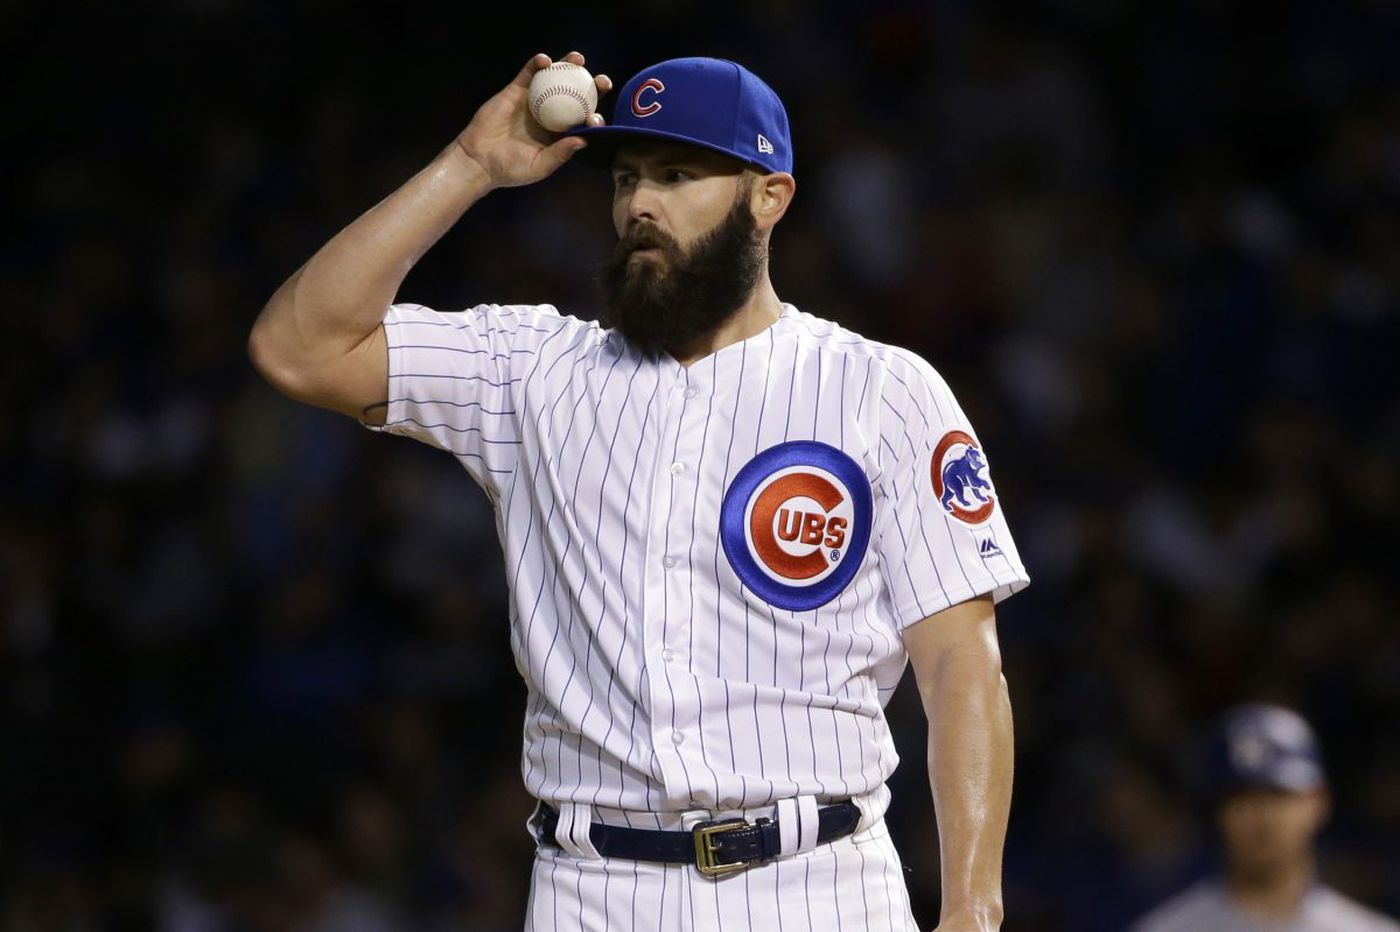 Source: Phillies to sign Jake Arrieta to multi-year deal, gaining star free-agent pitcher